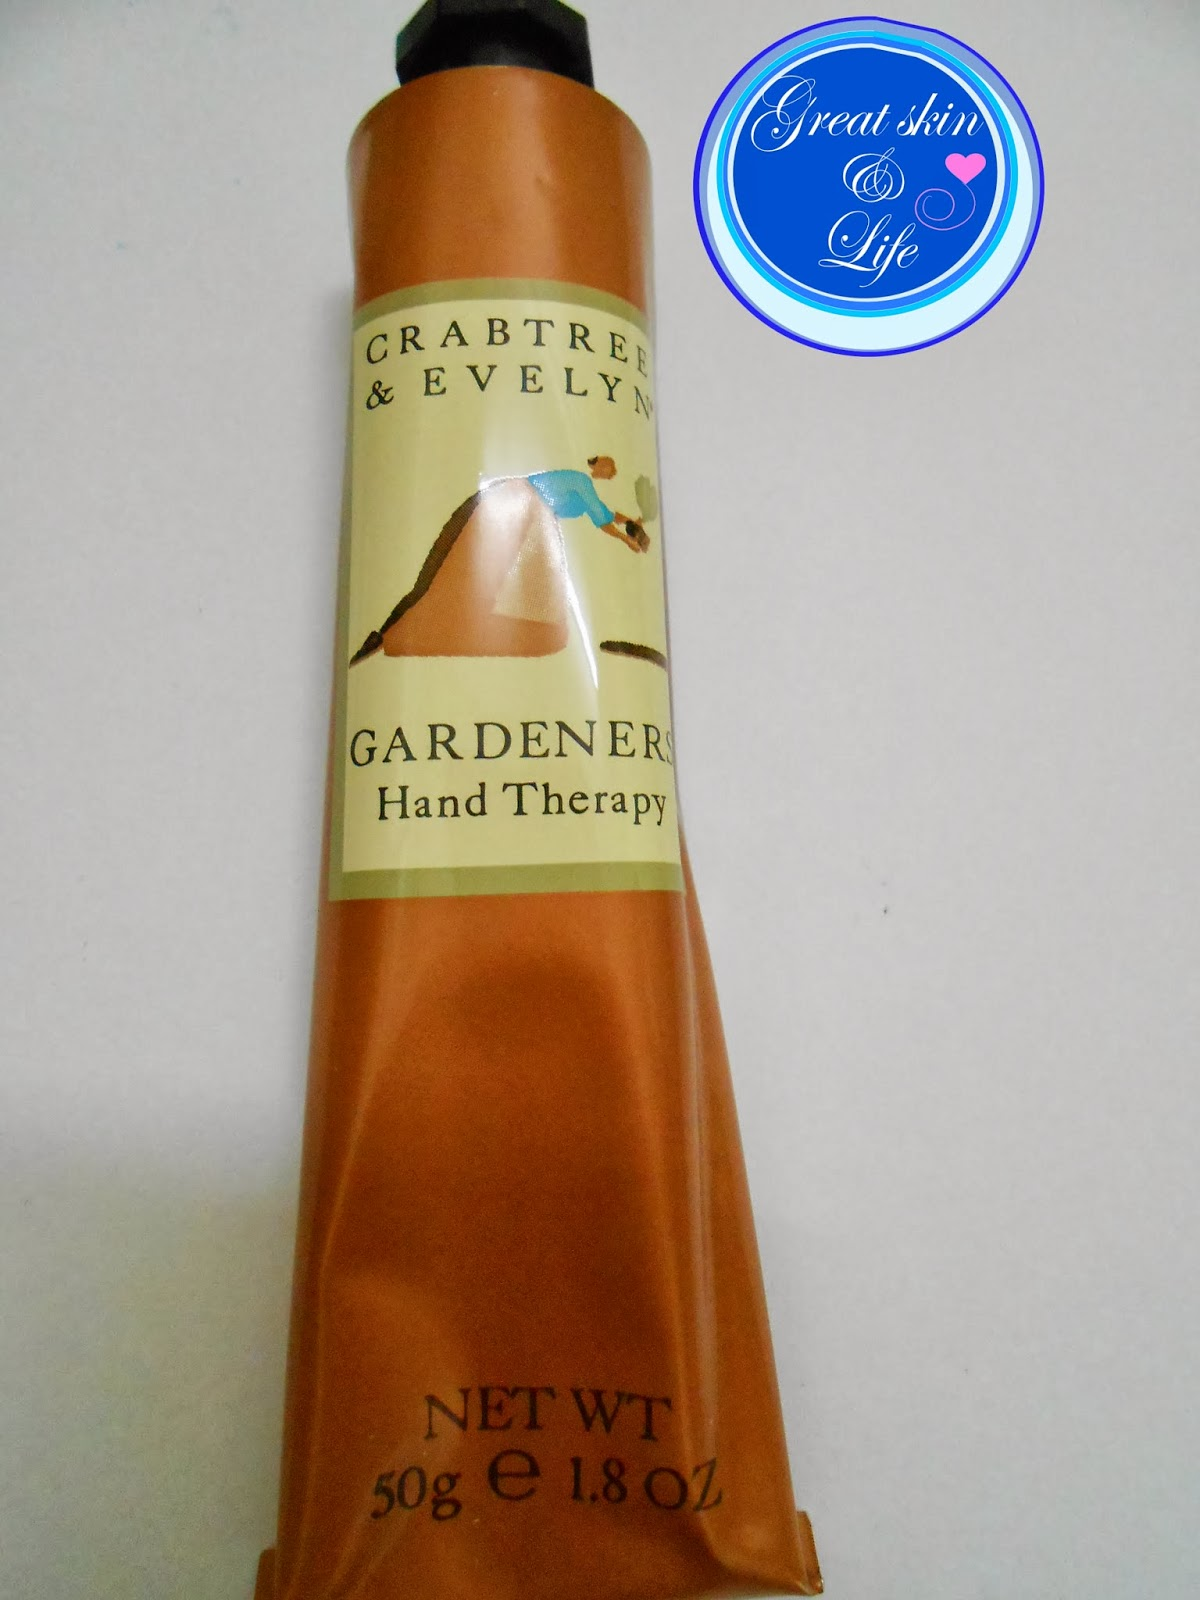 CRABTREE&EVELYN GARDENERS HAND THERAPY